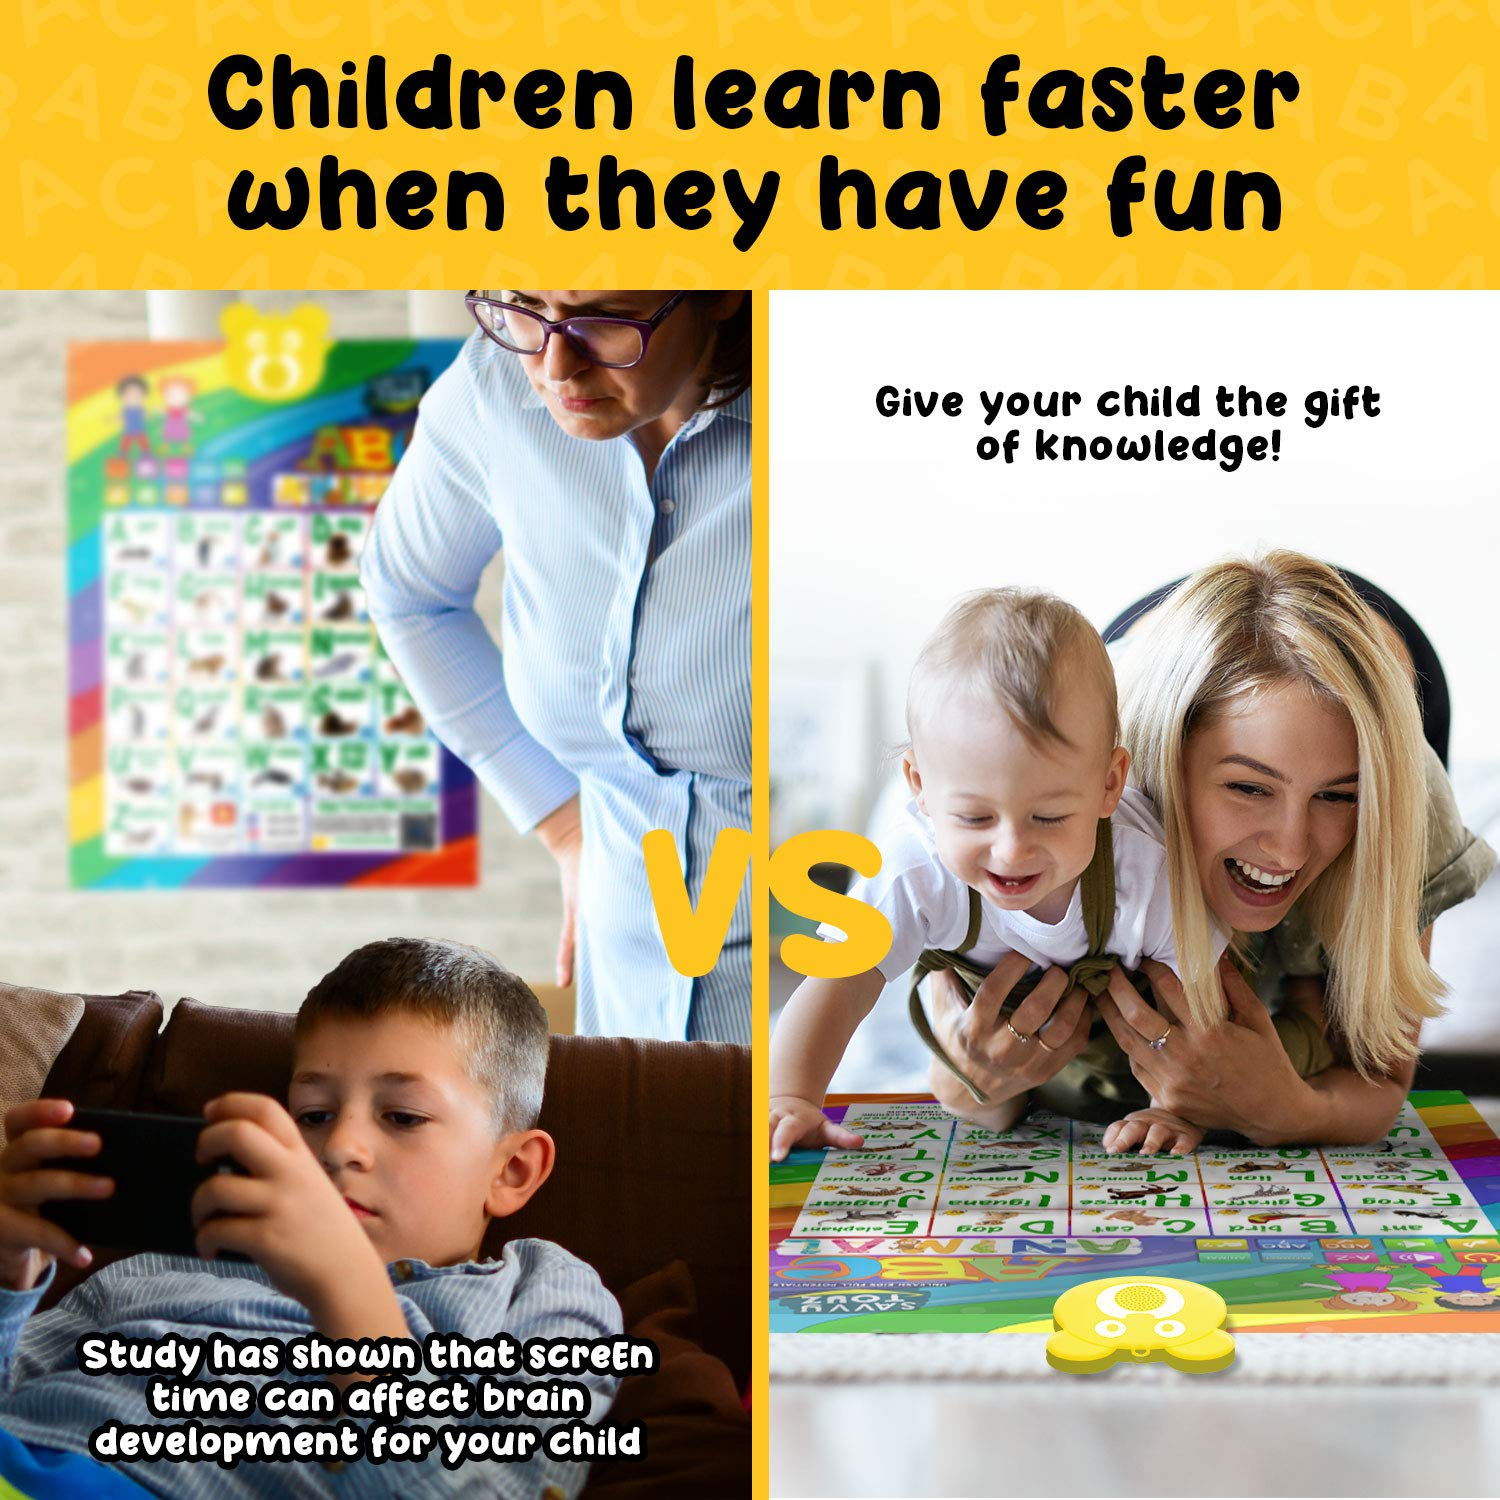 SavvyToyZ Educational Toys for 2-5 Year Olds - Help Your Toddler's Development and Education with Preschool Learning Toys - Fun Talking Interactive Poster for Entertainment and Learning Alphabet by SavvyToyZ (Image #6)